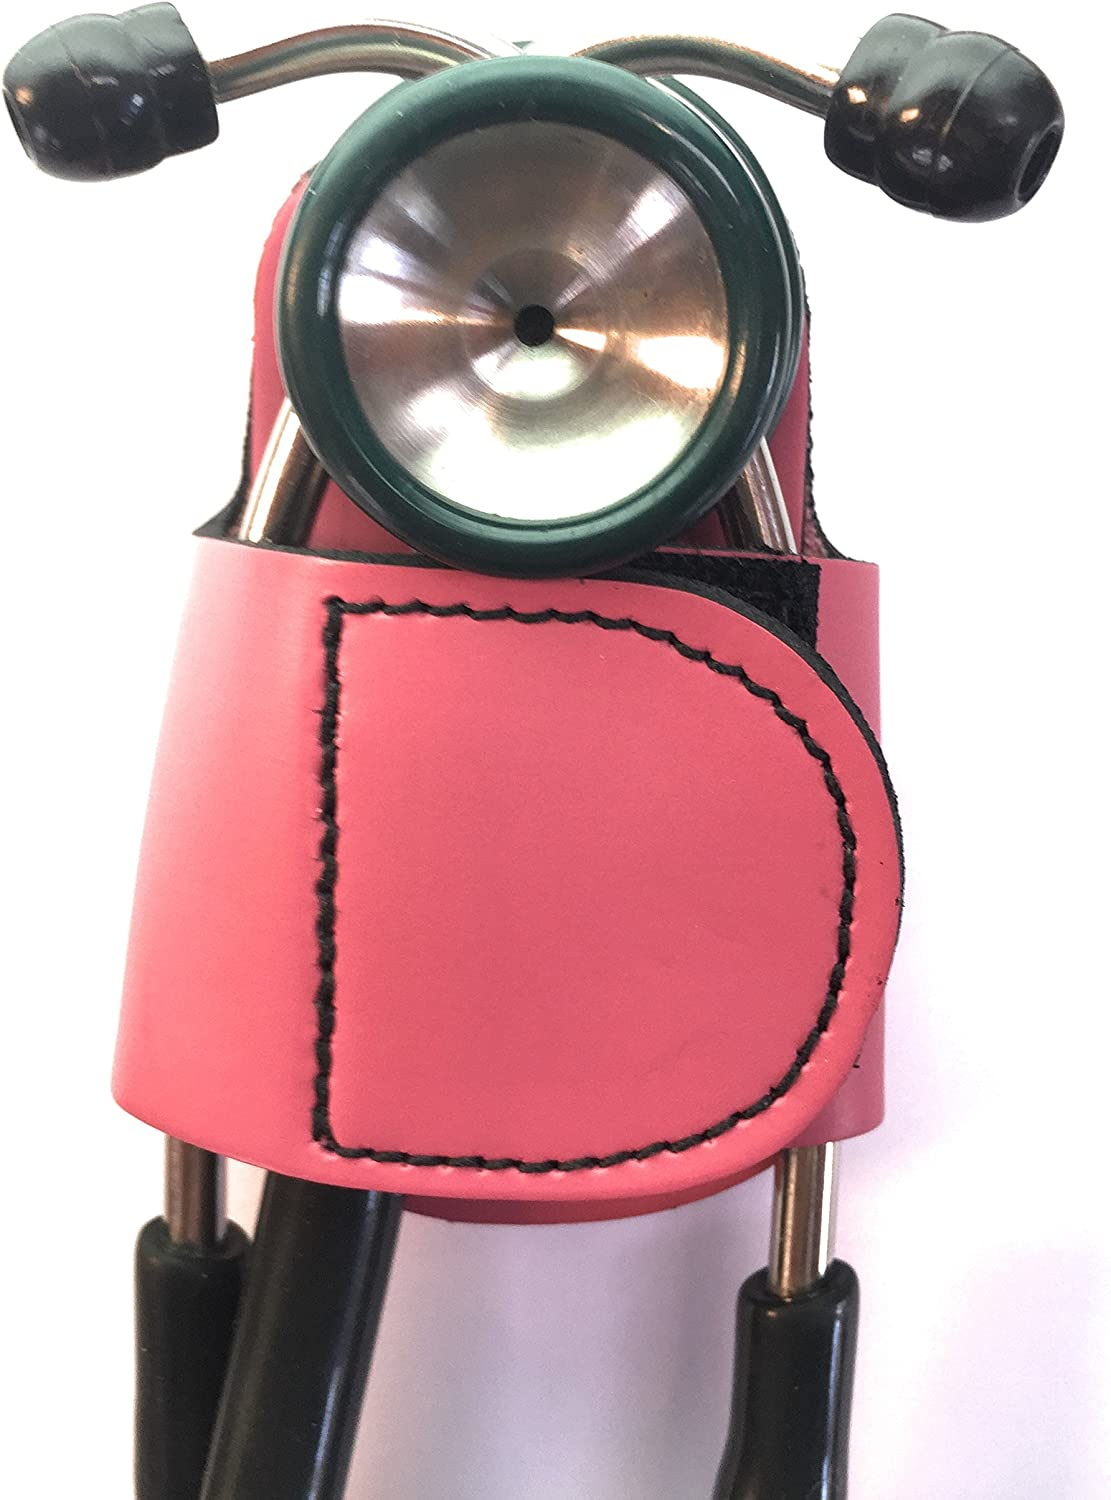 The BATCLIP PINK Premium leather handmade clip-on stethoscope hip holder no more neck carrying, loss, or misplacement. Proudly carry your high-end stethoscope with taste and style.